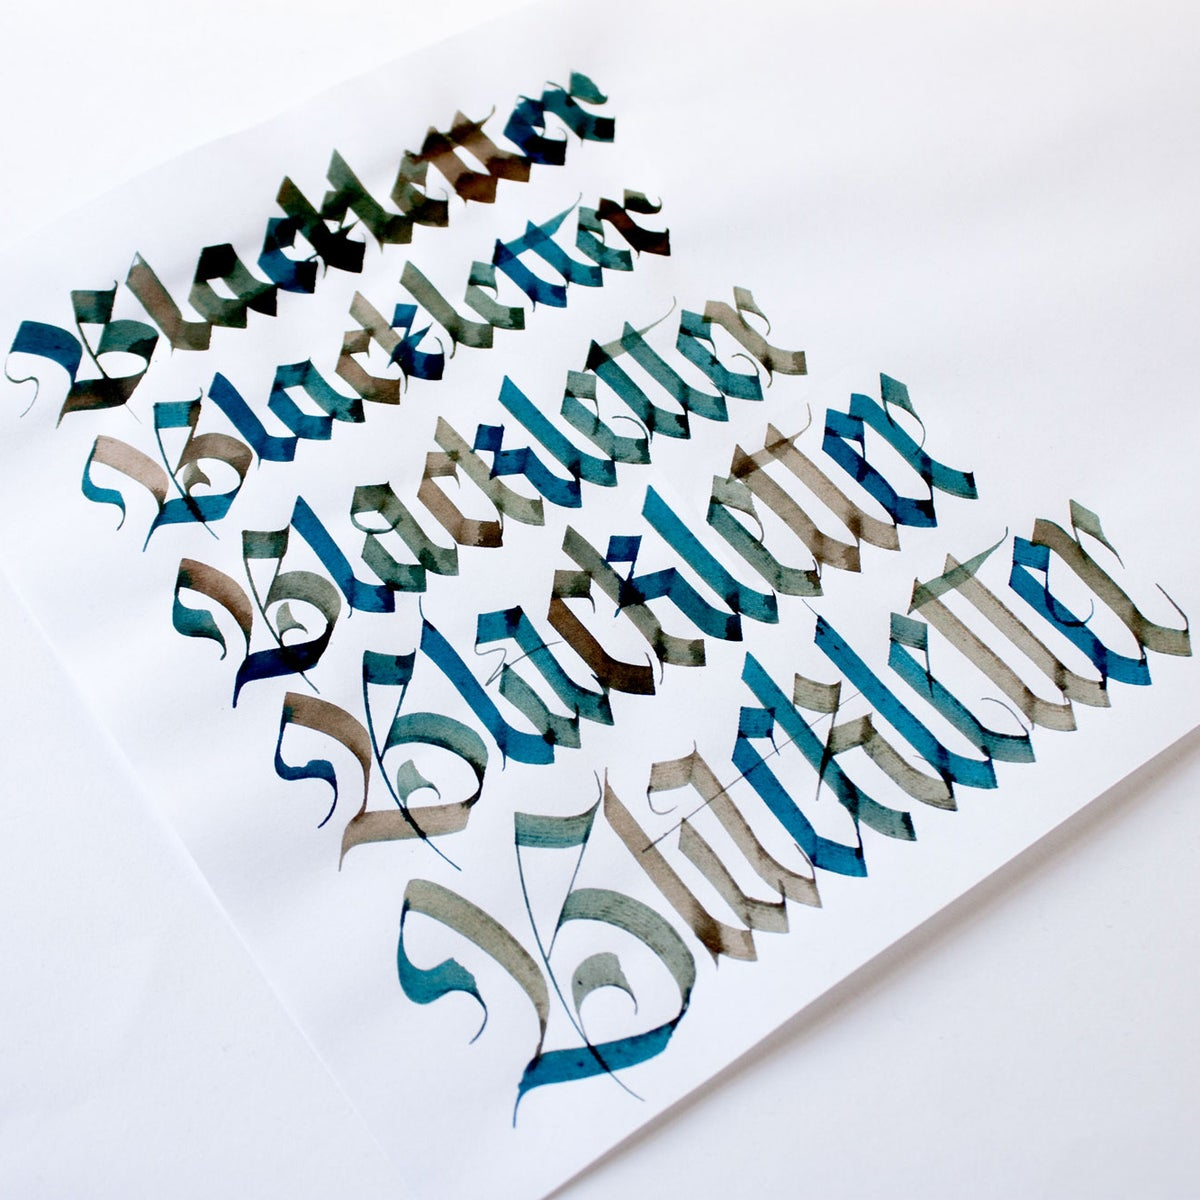 Image of In-Person Blackletter Calligraphy